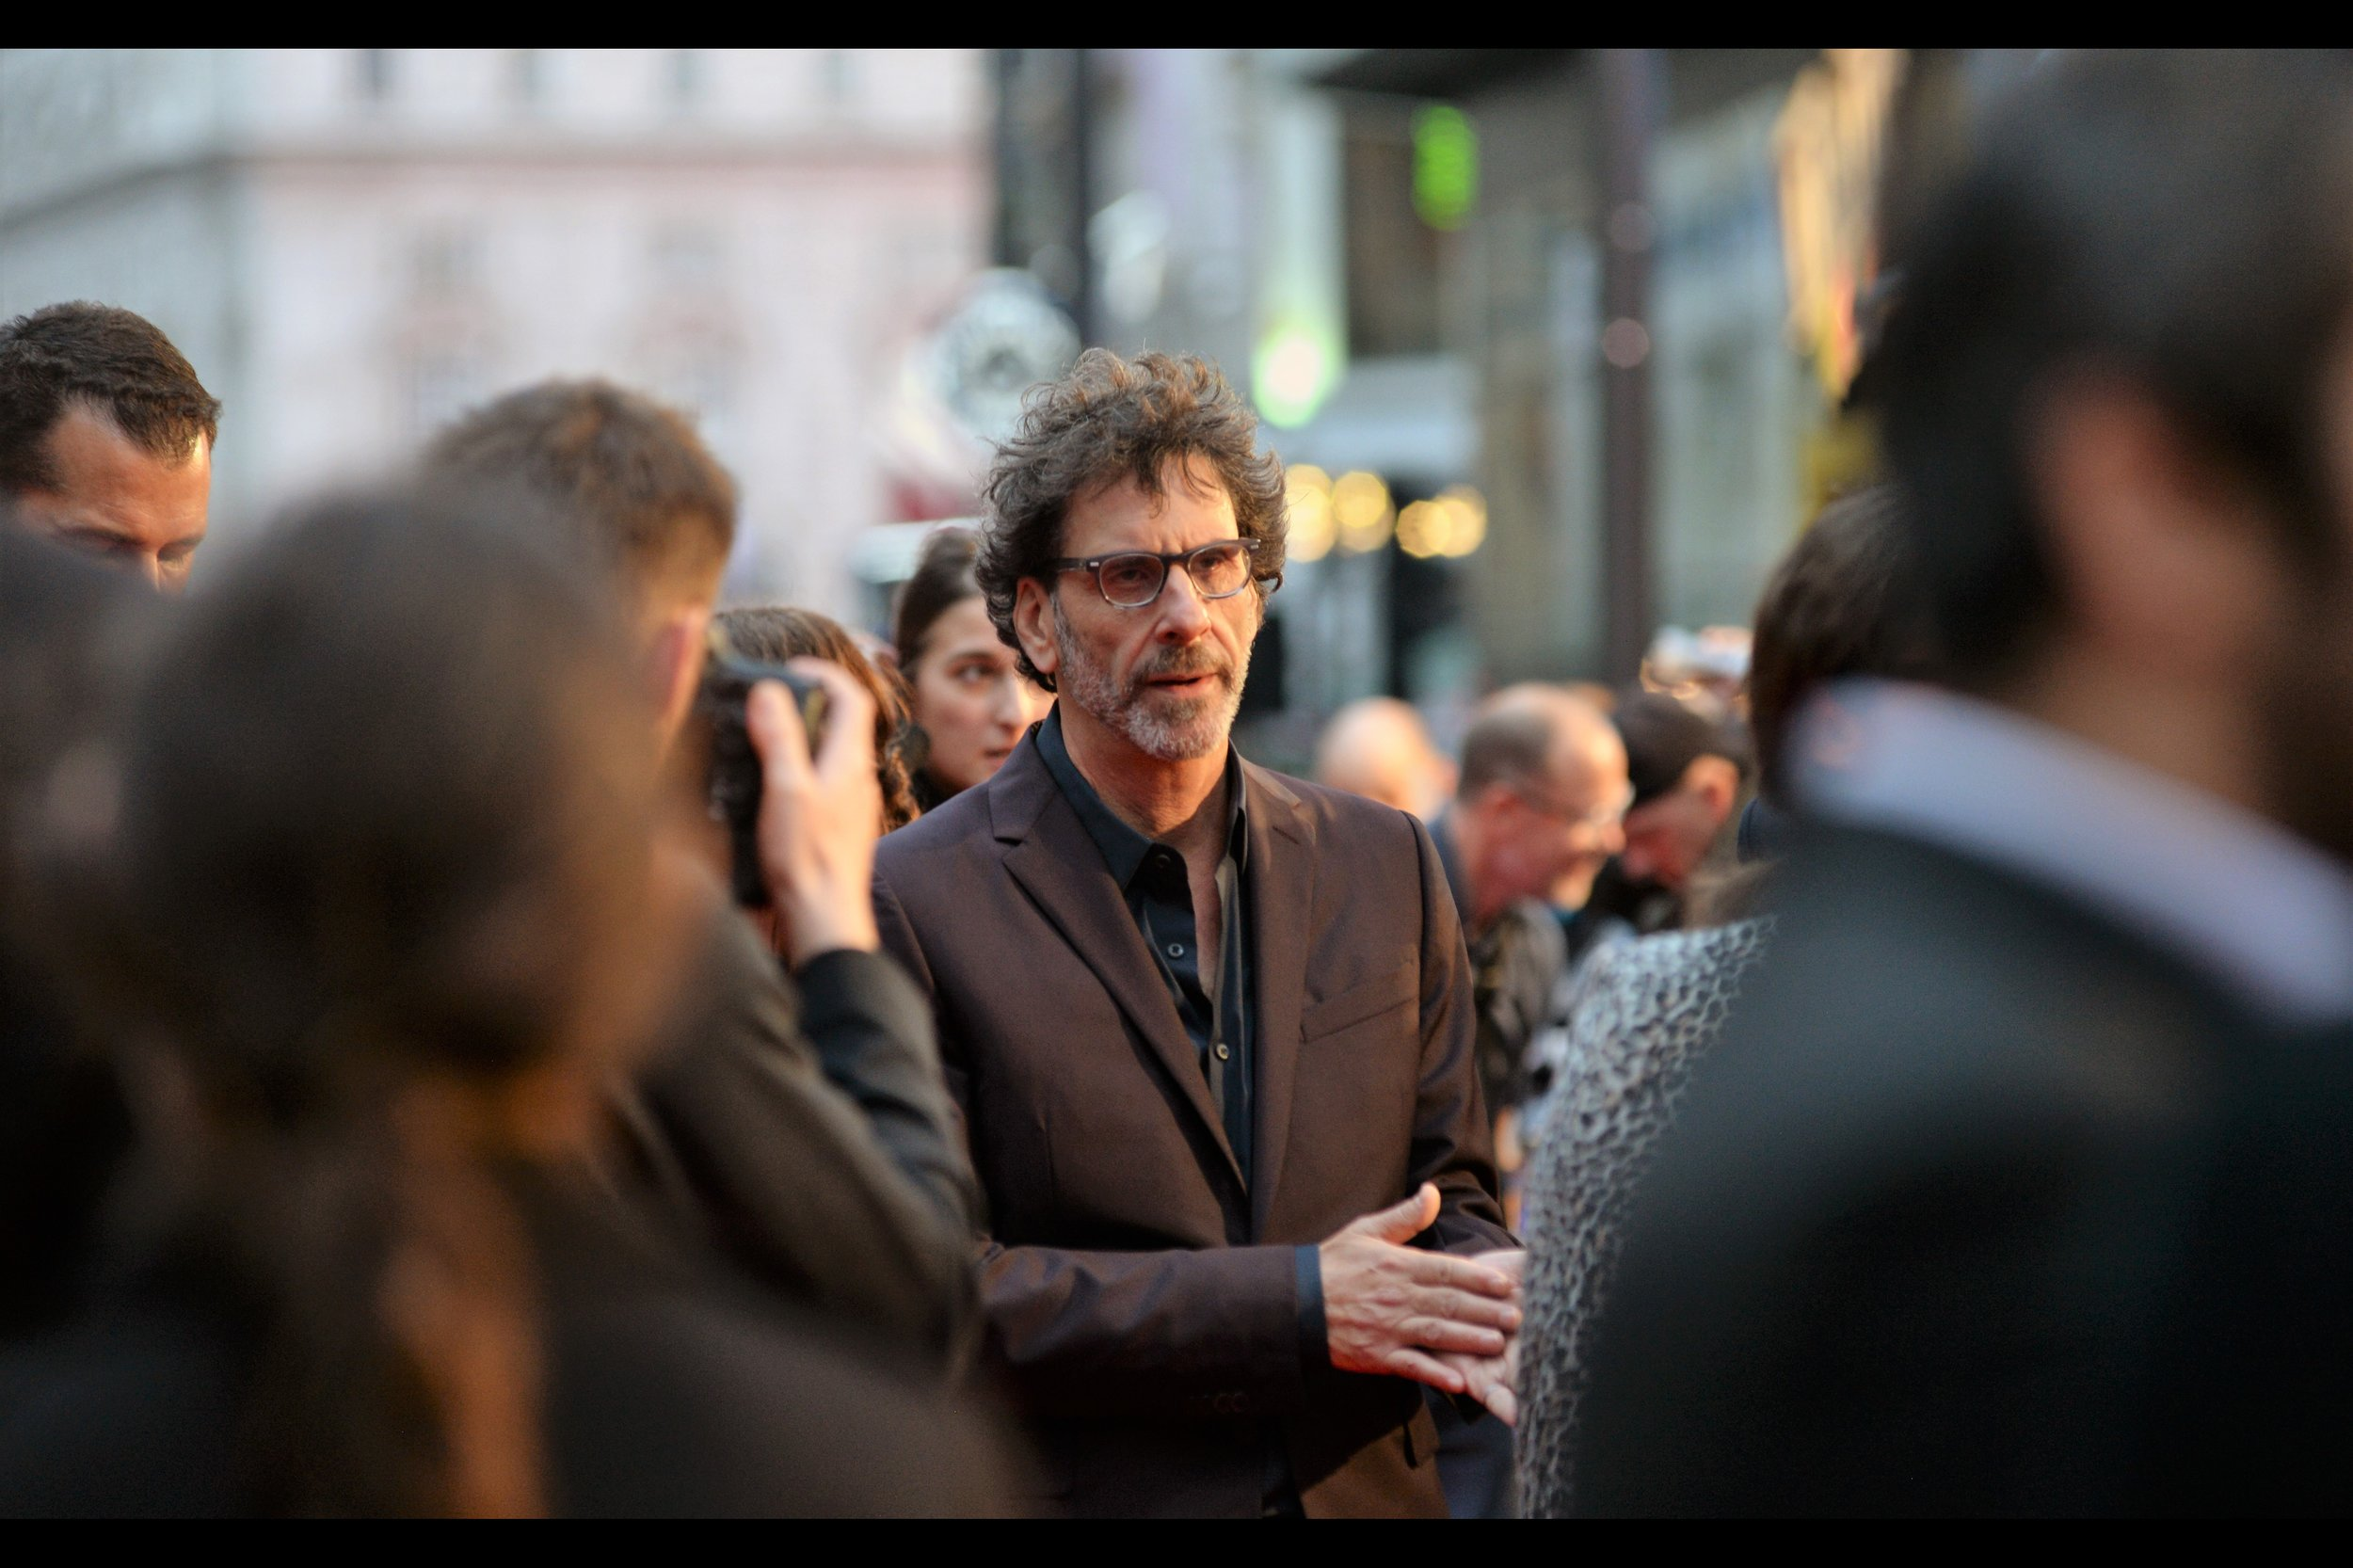 Having posed for the VIP Paparazzi, and possibly not bothered with the regular photographers (?), directors Joel Cohen (pictured) and Ethan Coen (not pictured) decided not to do interviews, let alone sign or pose for selfies or bless babies or politely decline offered spec scrips. And their wide retinue moved as one mass down the red carpet, blocking most shots.